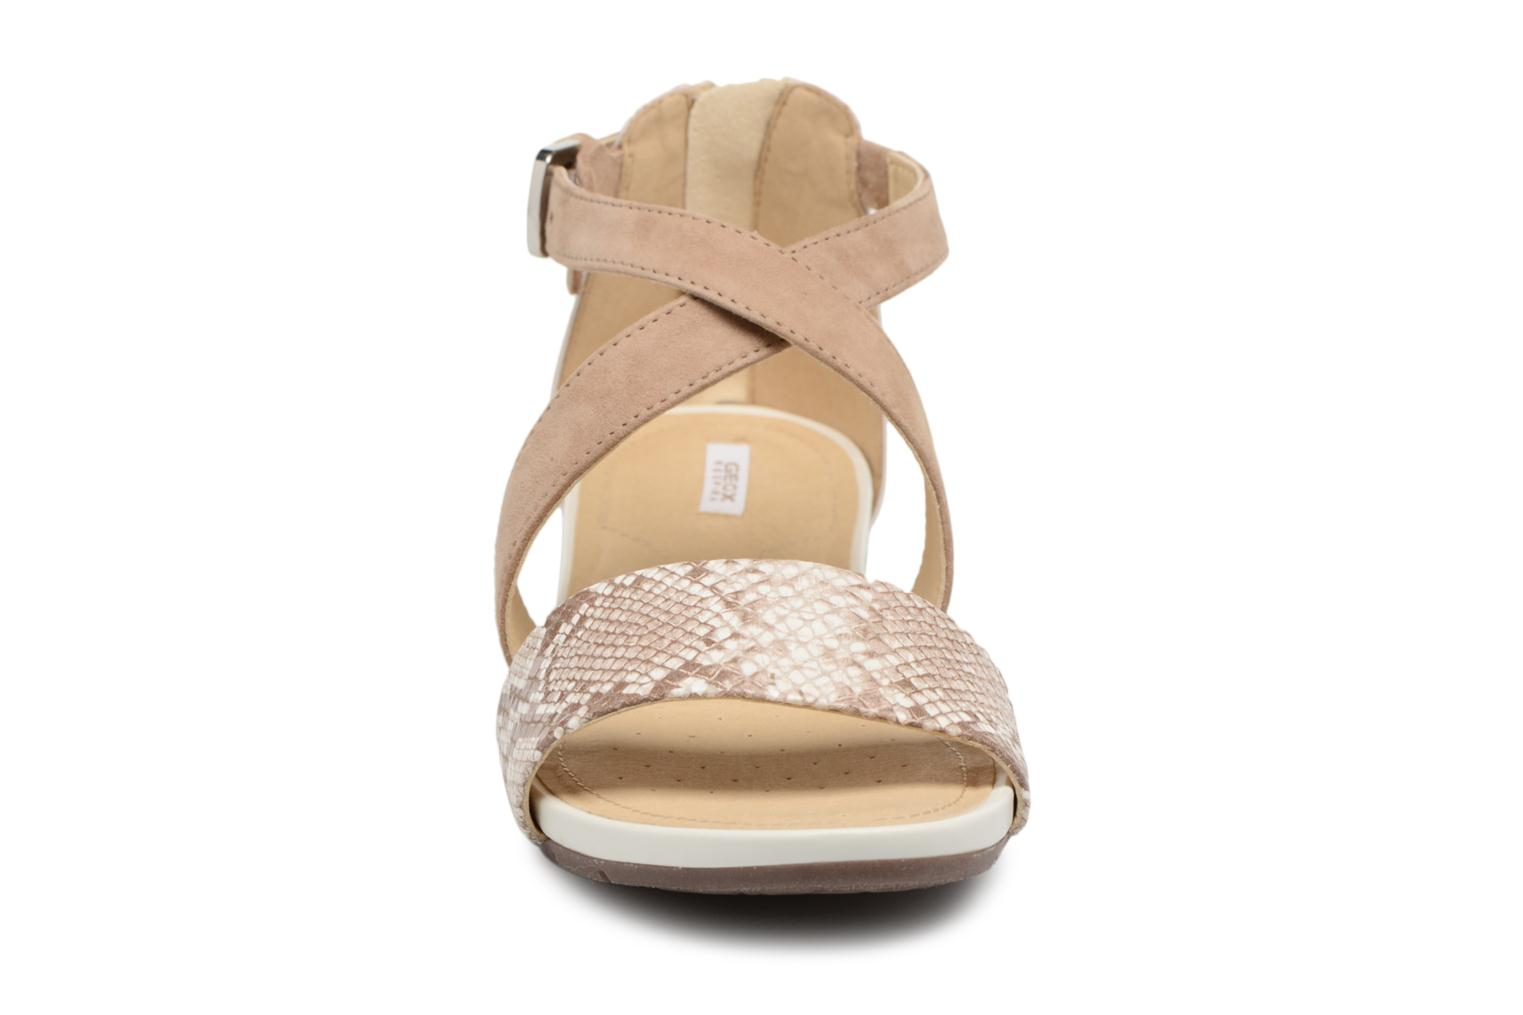 D FORMOSA A D8293A BEIGE/OFF WHITE